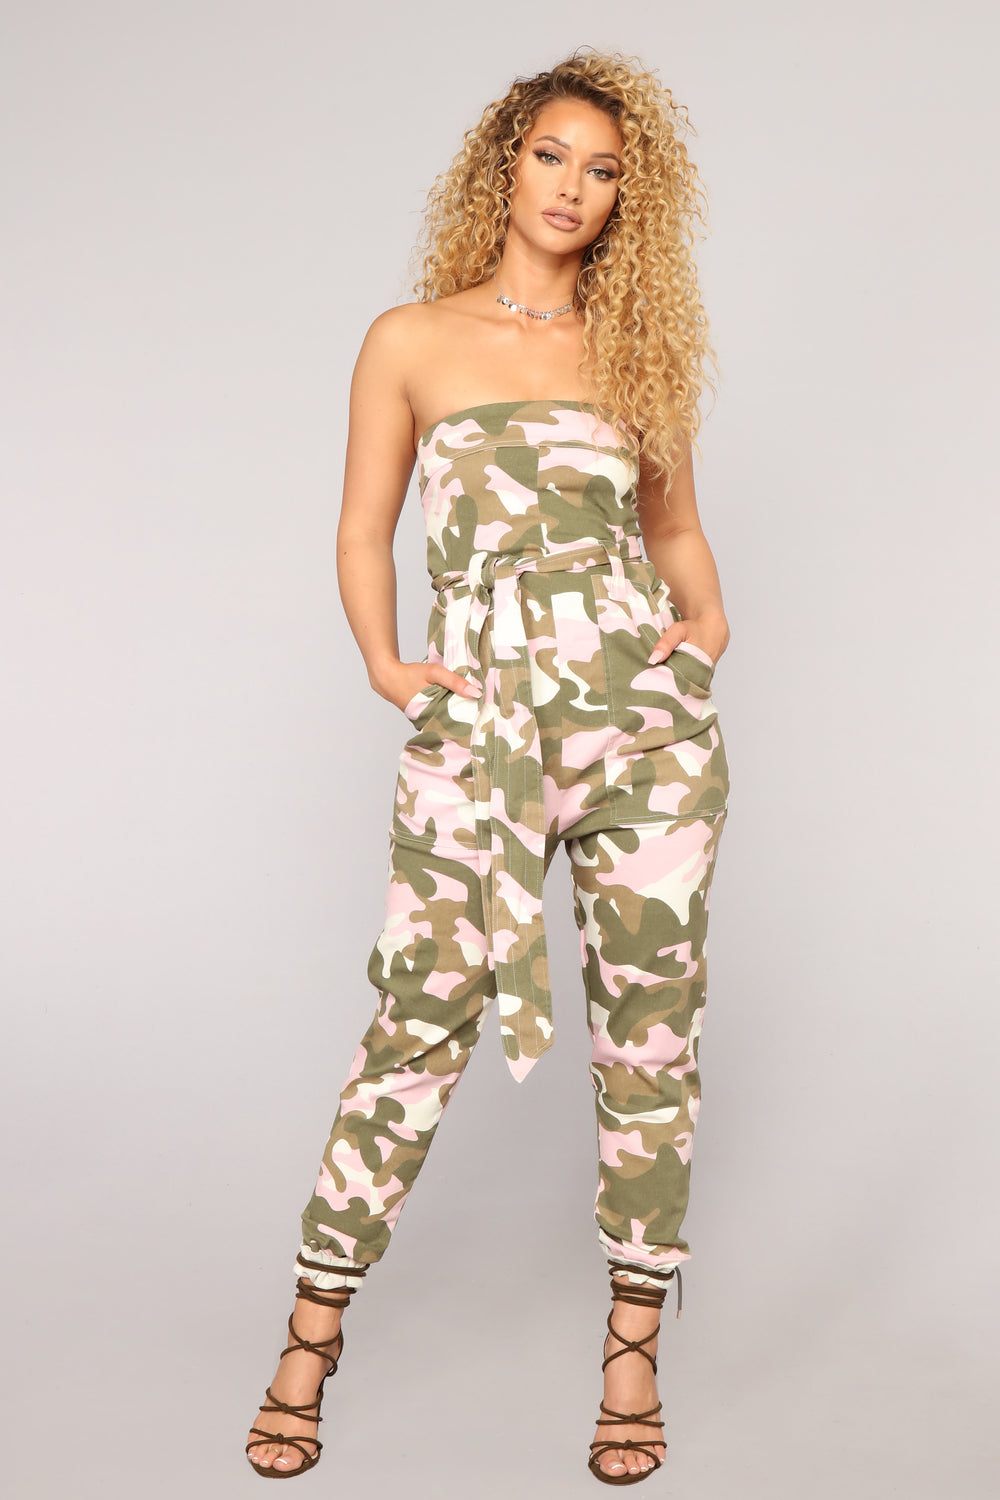 I Need A Soulja Camo Jumpsuit - Pink/White